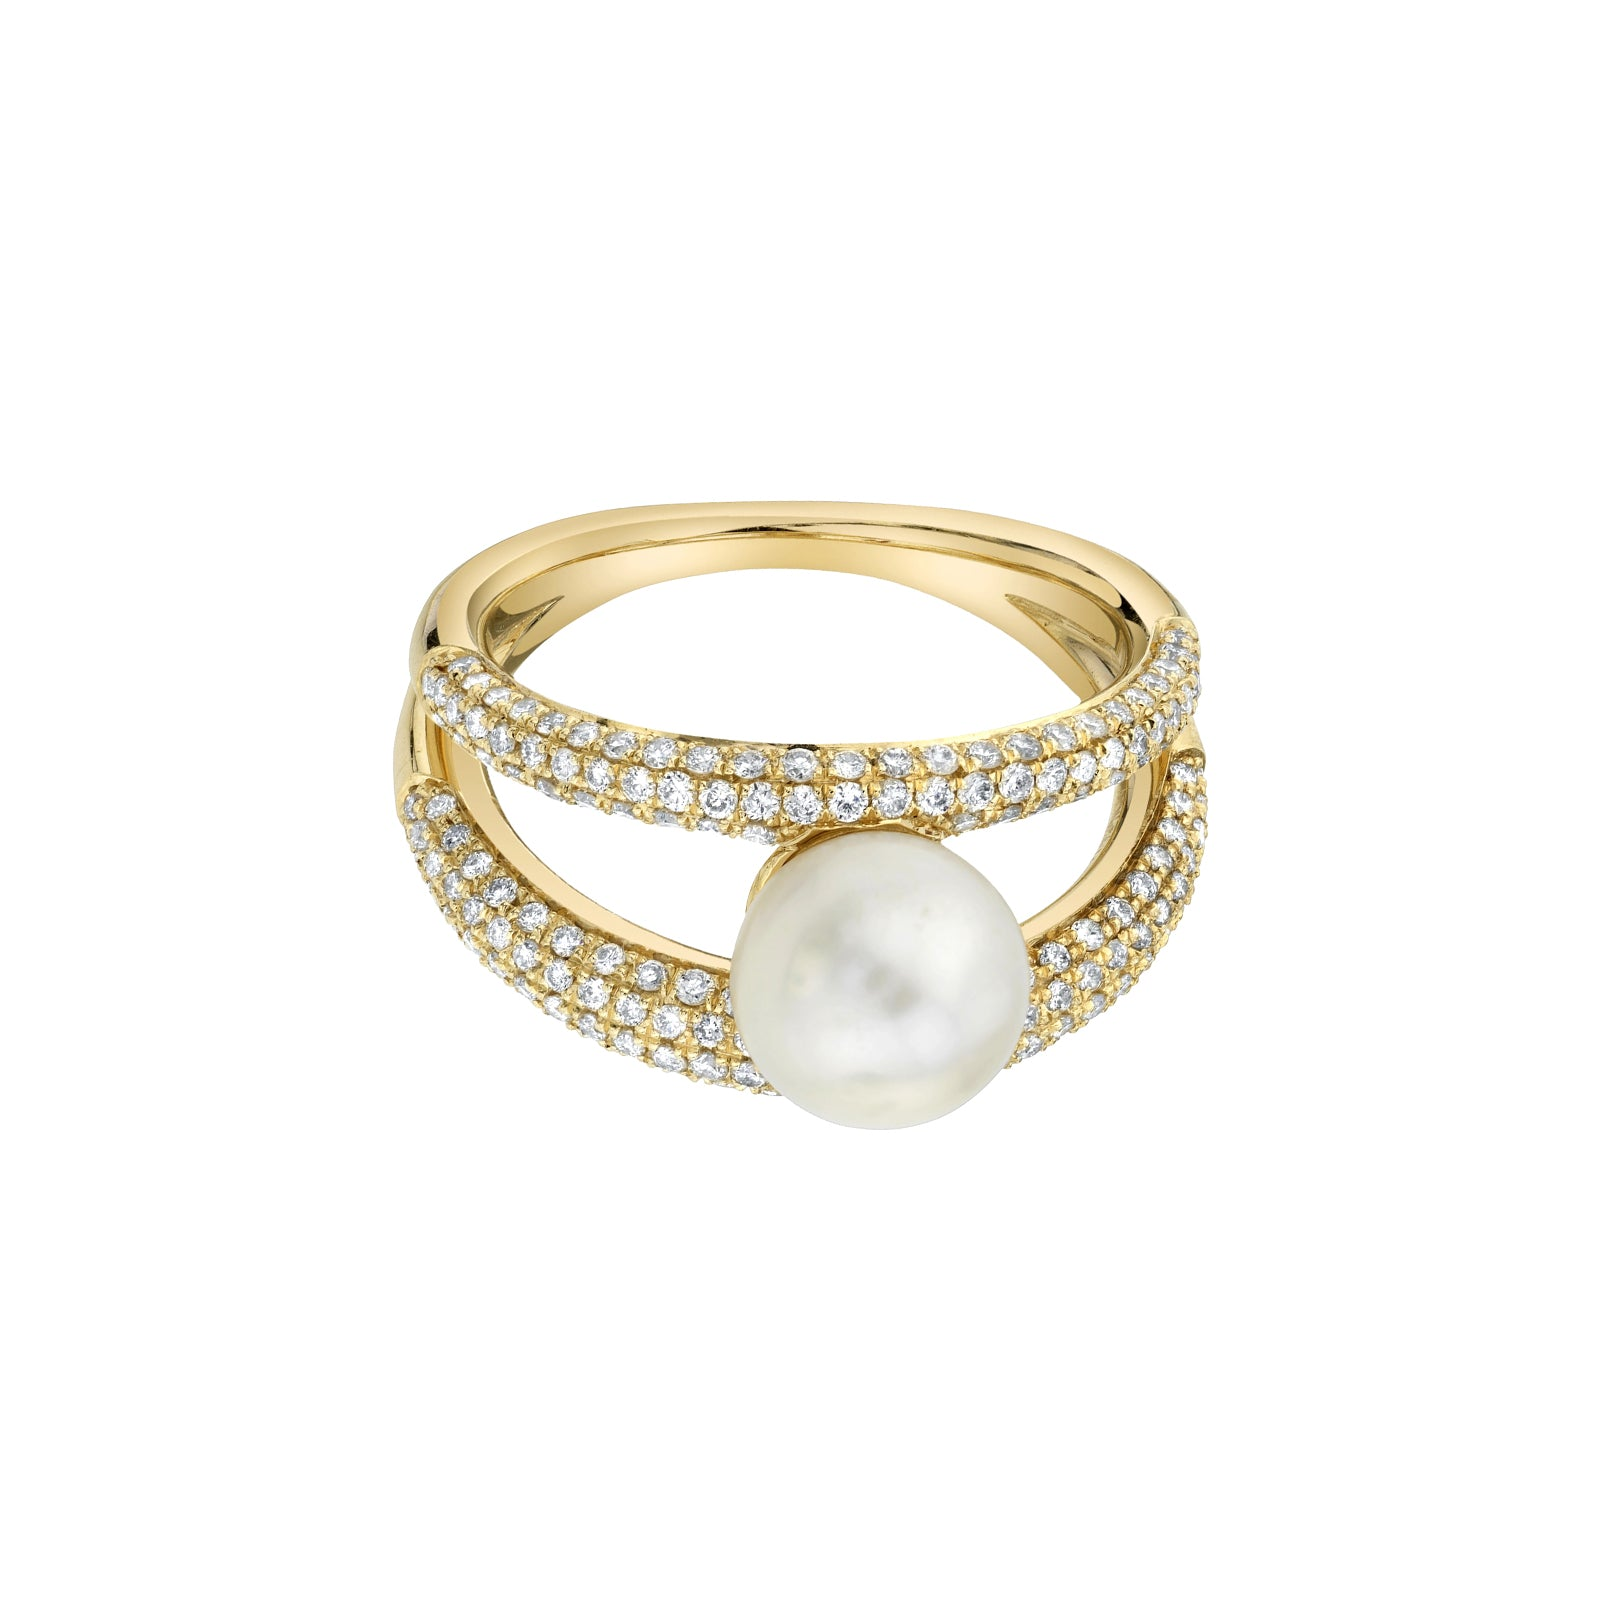 Gabriela Artigas & Company Twin Tusk Suspended Pearl Ring - Yellow Gold - Rings - Broken English Jewelry